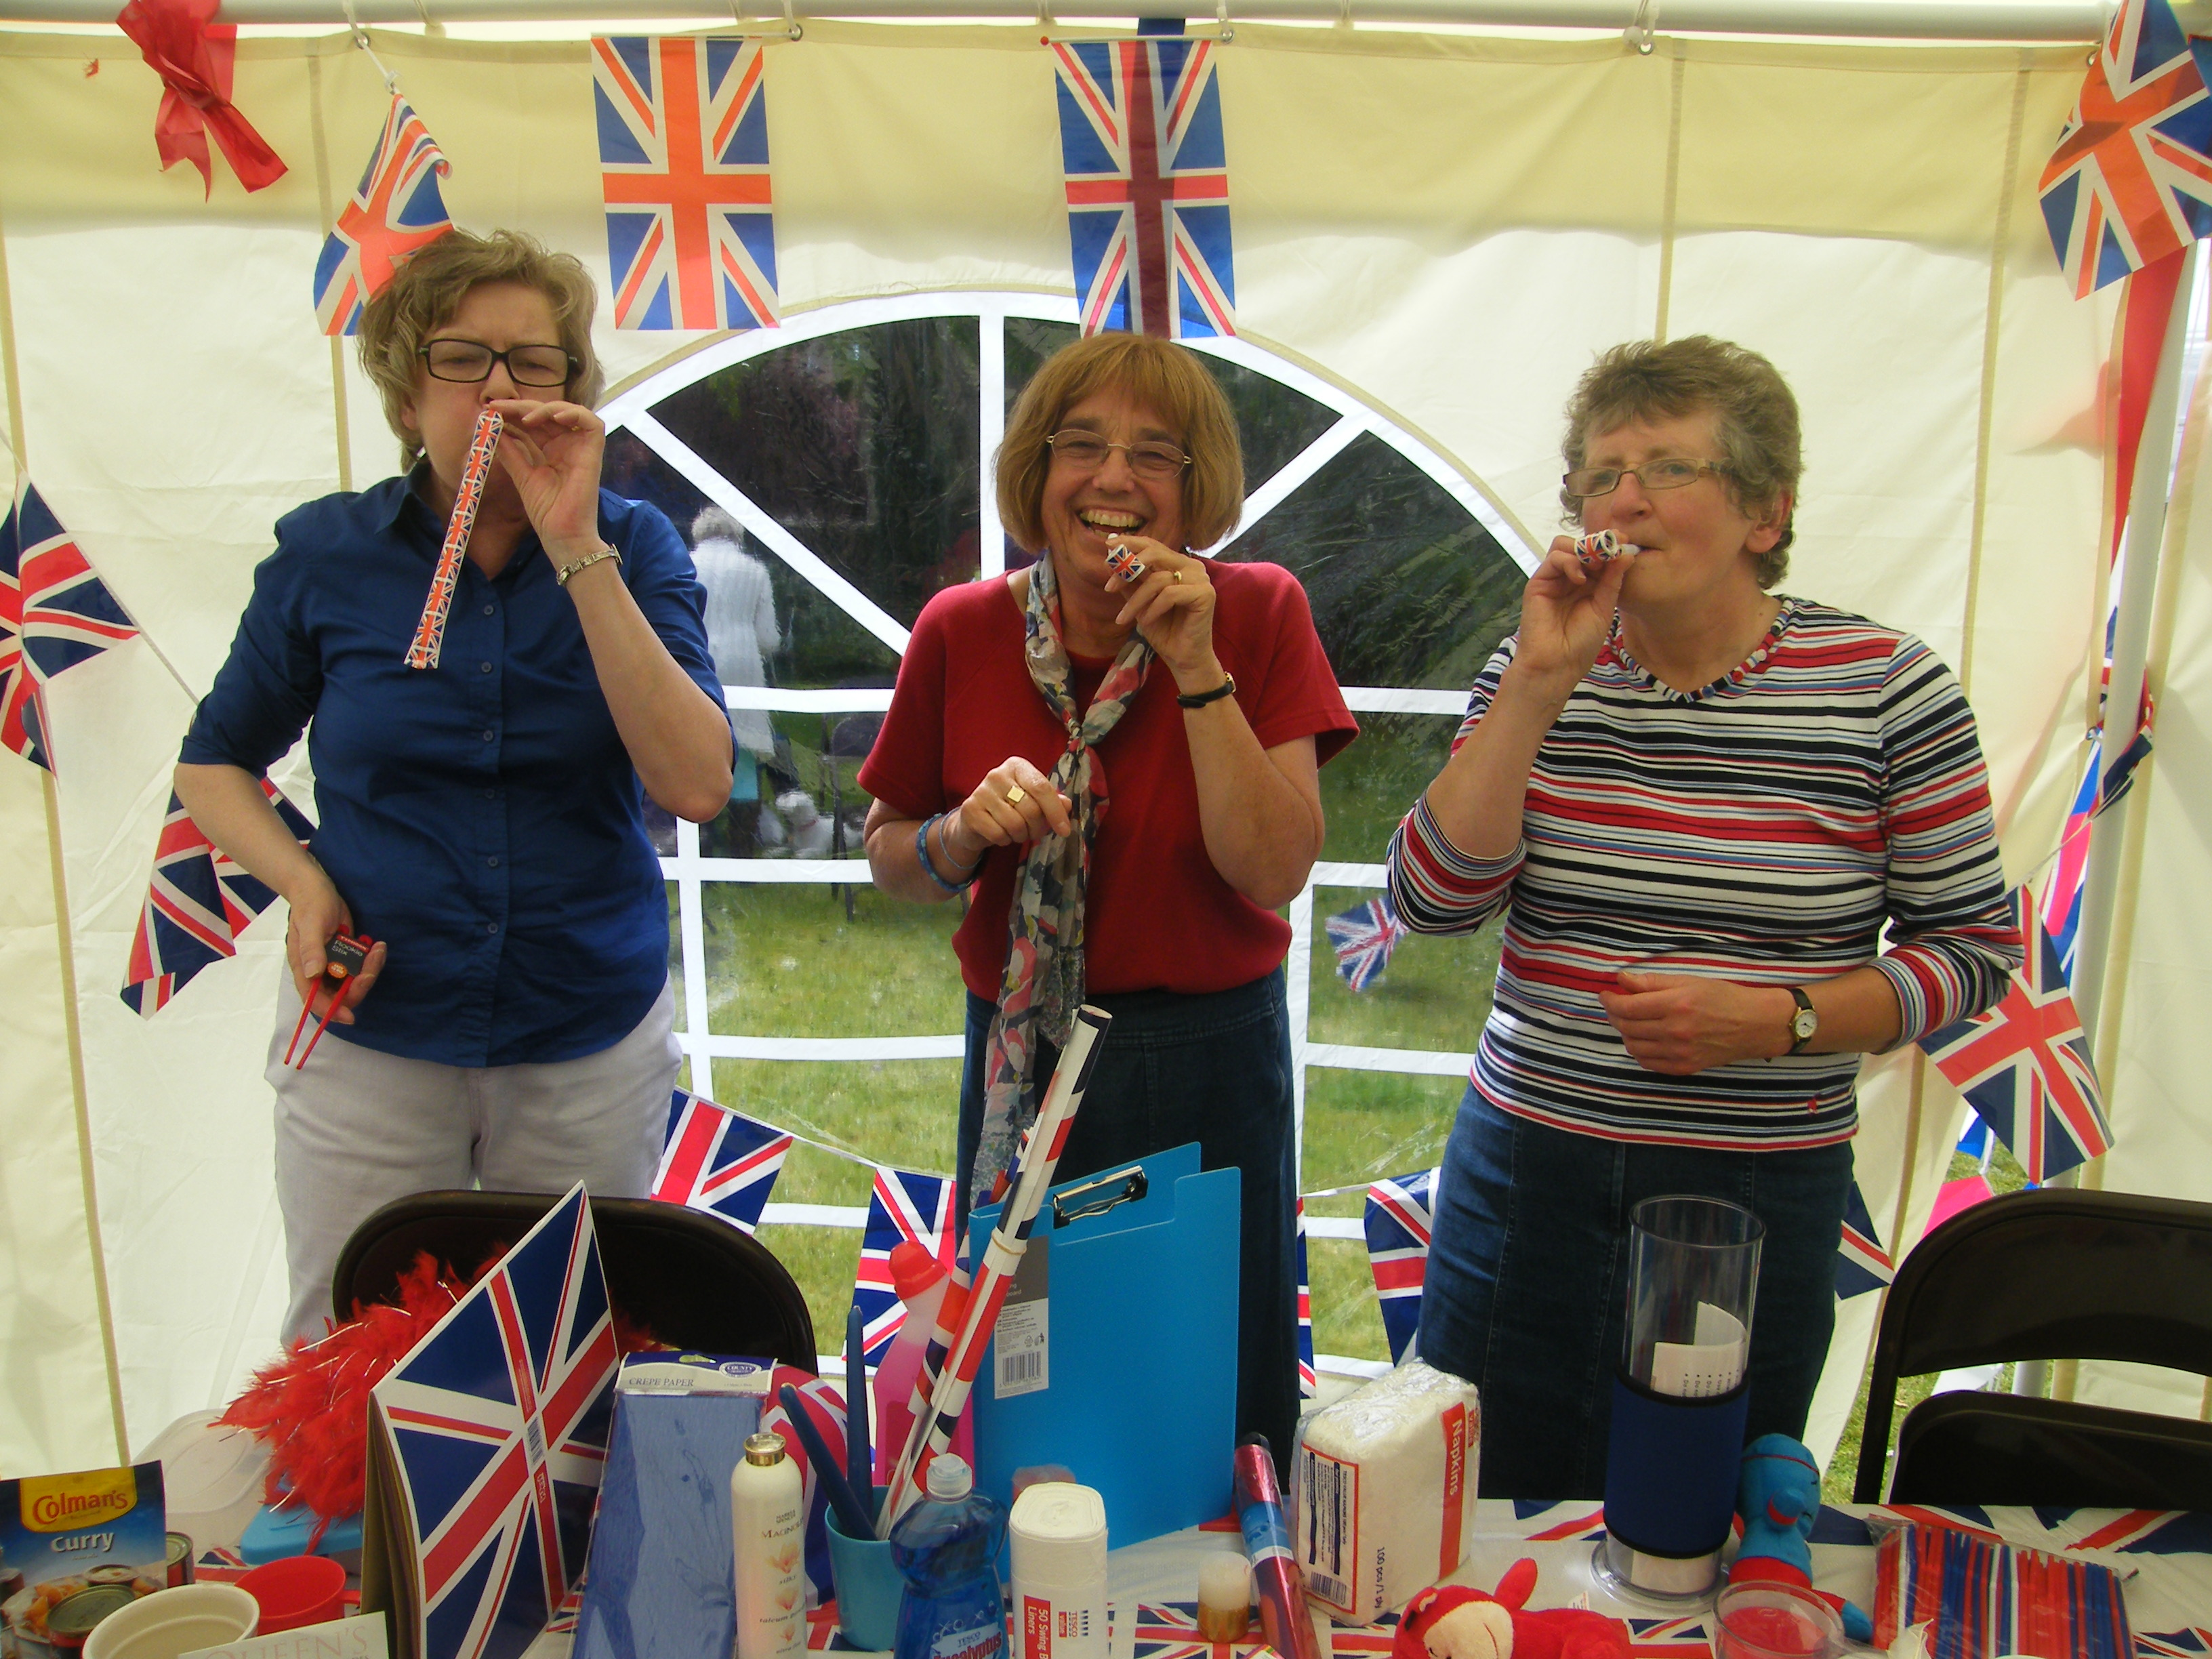 Preparing the Red White and Blue Stall for the Church Fete, June 2012